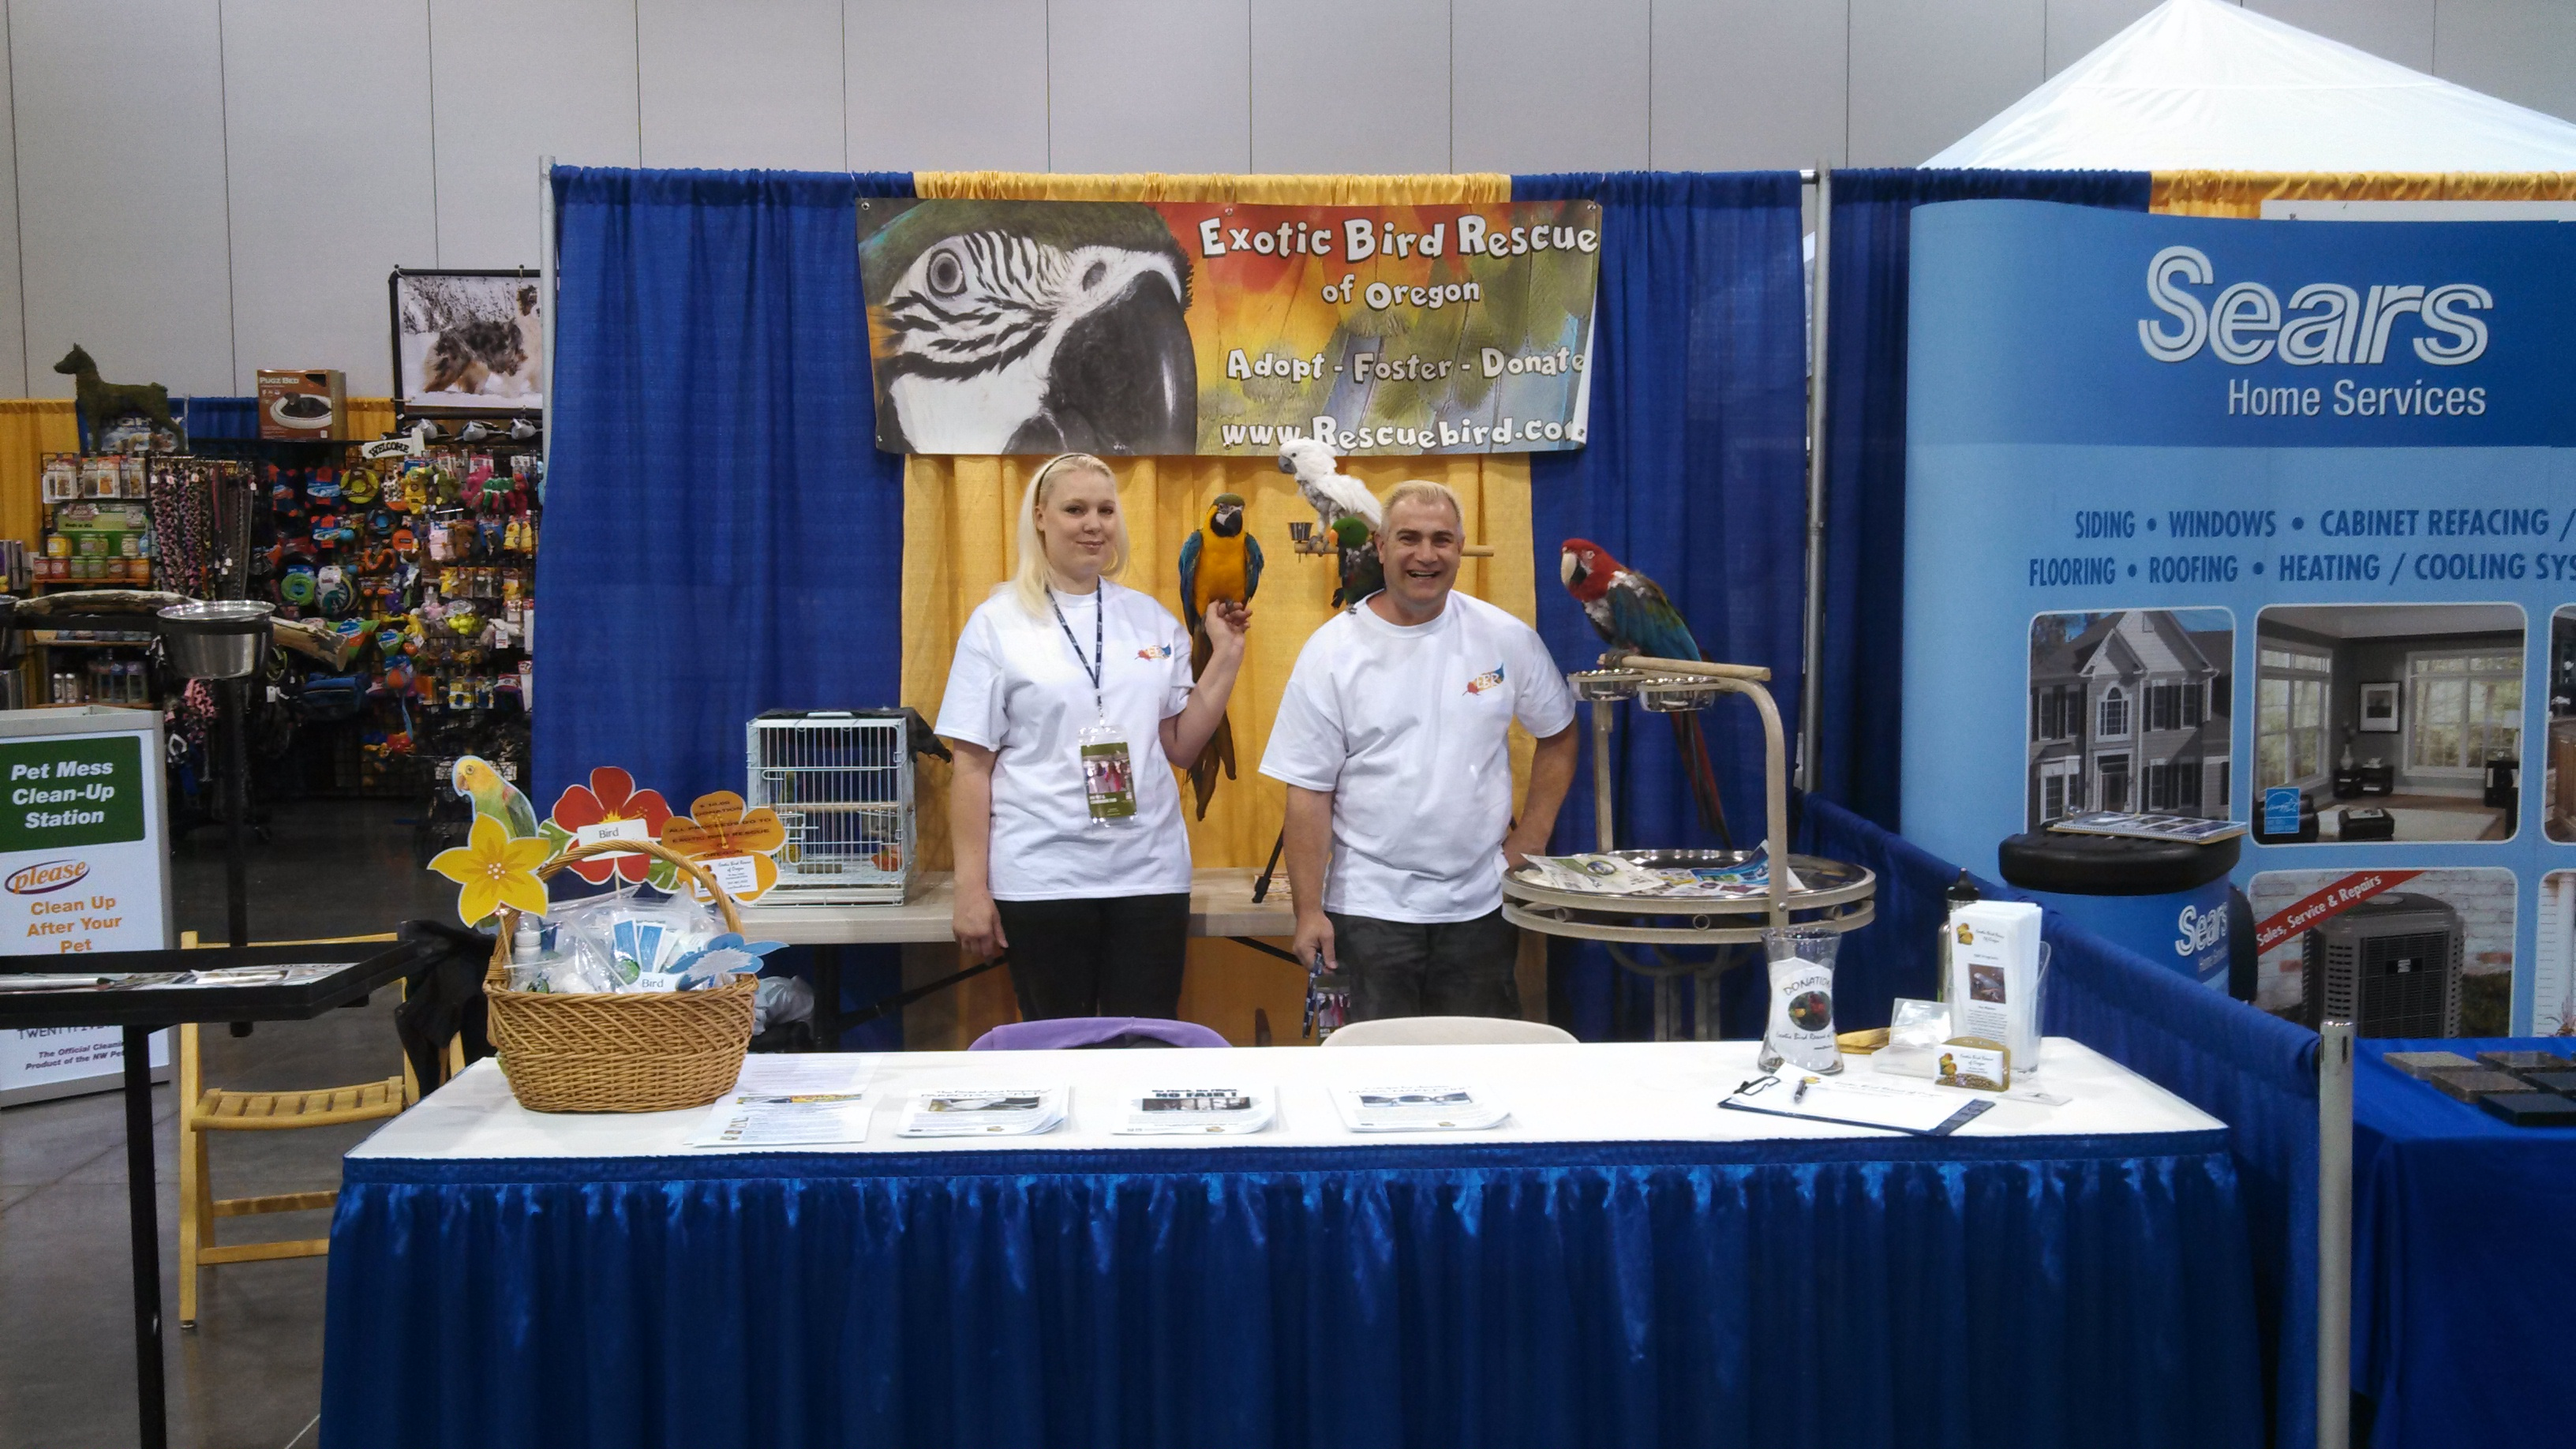 pet-andcompanion-fair-2014.jpg